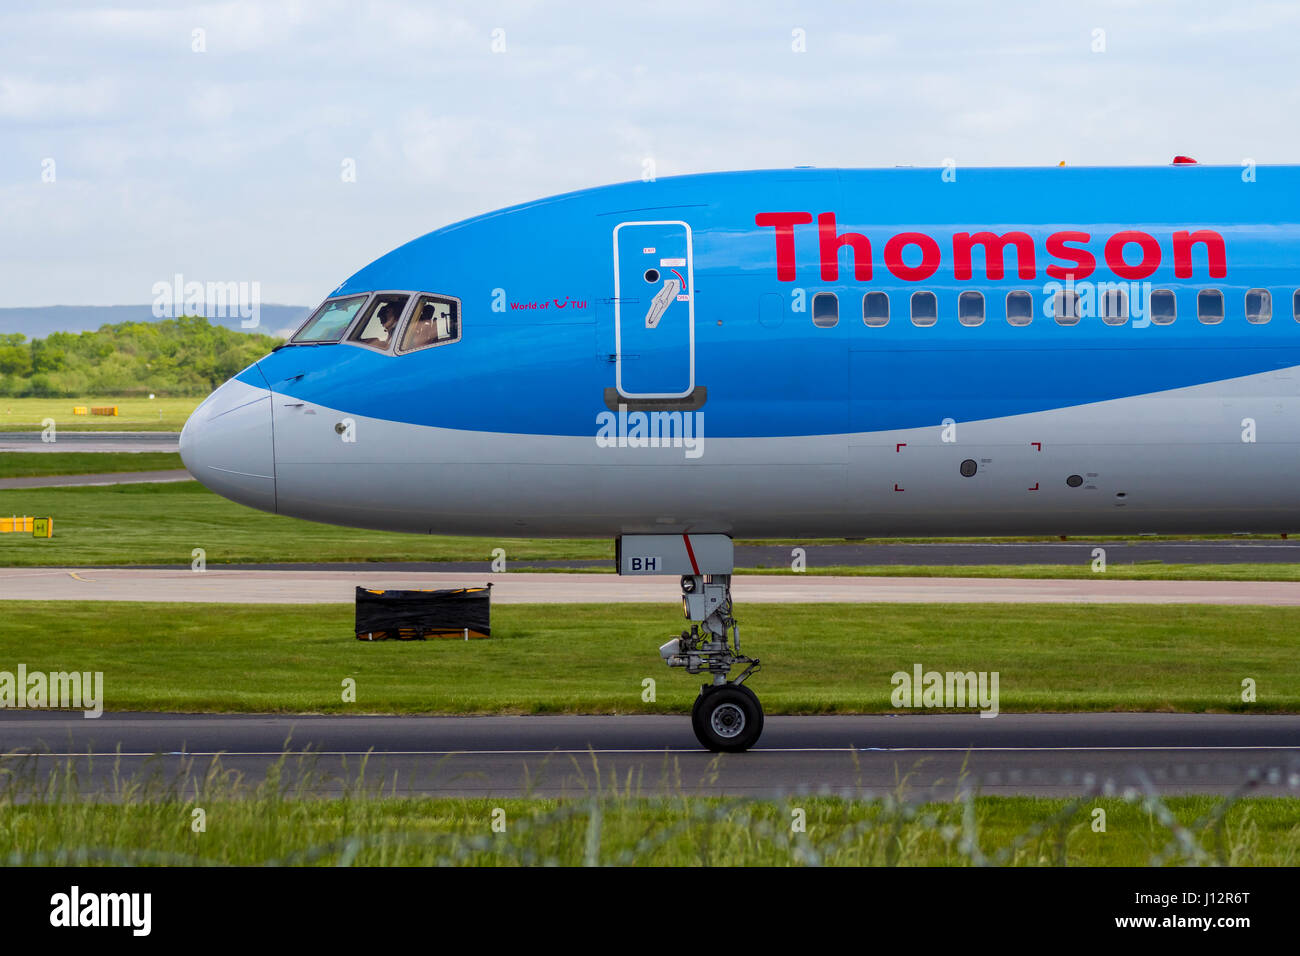 Thomson Airways plane taxiing after landing at Manchester Aiport - Stock Image